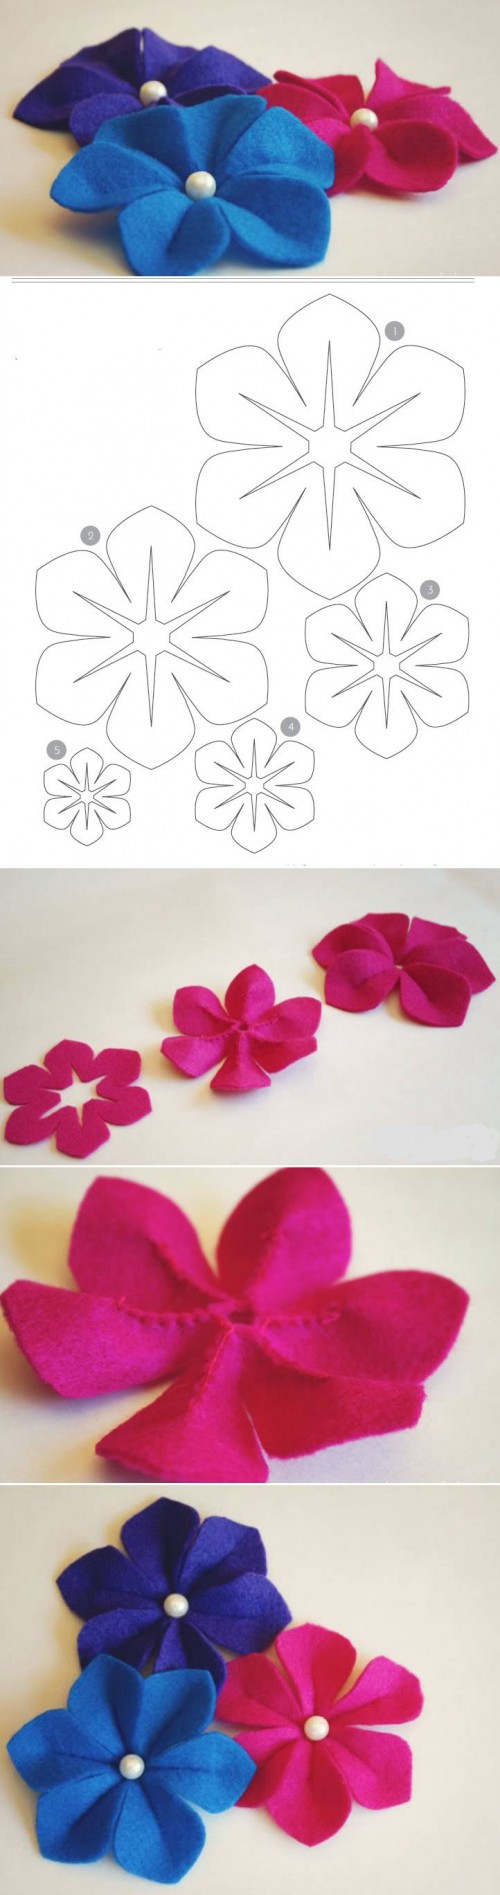 How To Make Easy Felt Flower step by step DIY tutorial instructions